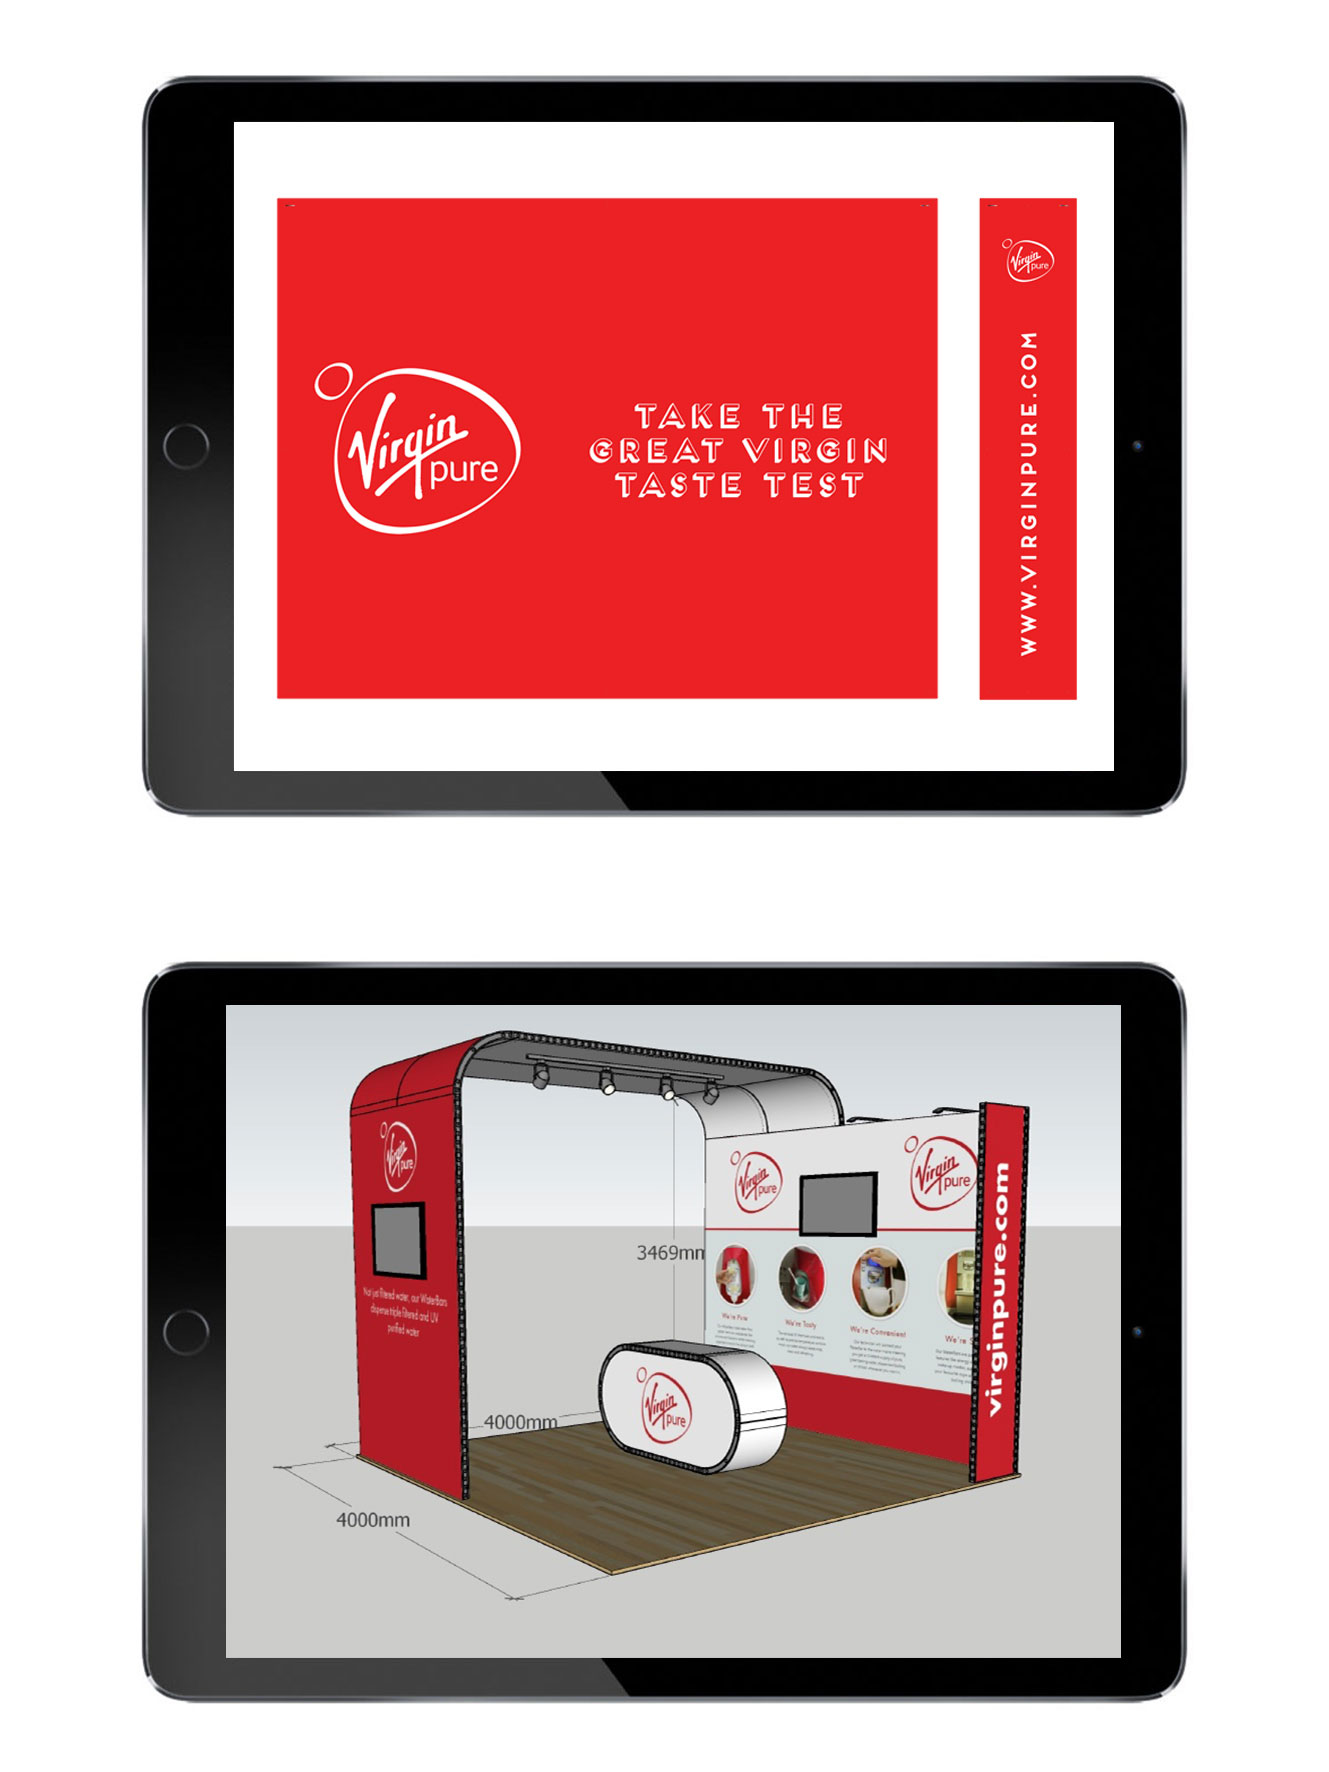 Virgin Pure Display Stand Artwork For Expo